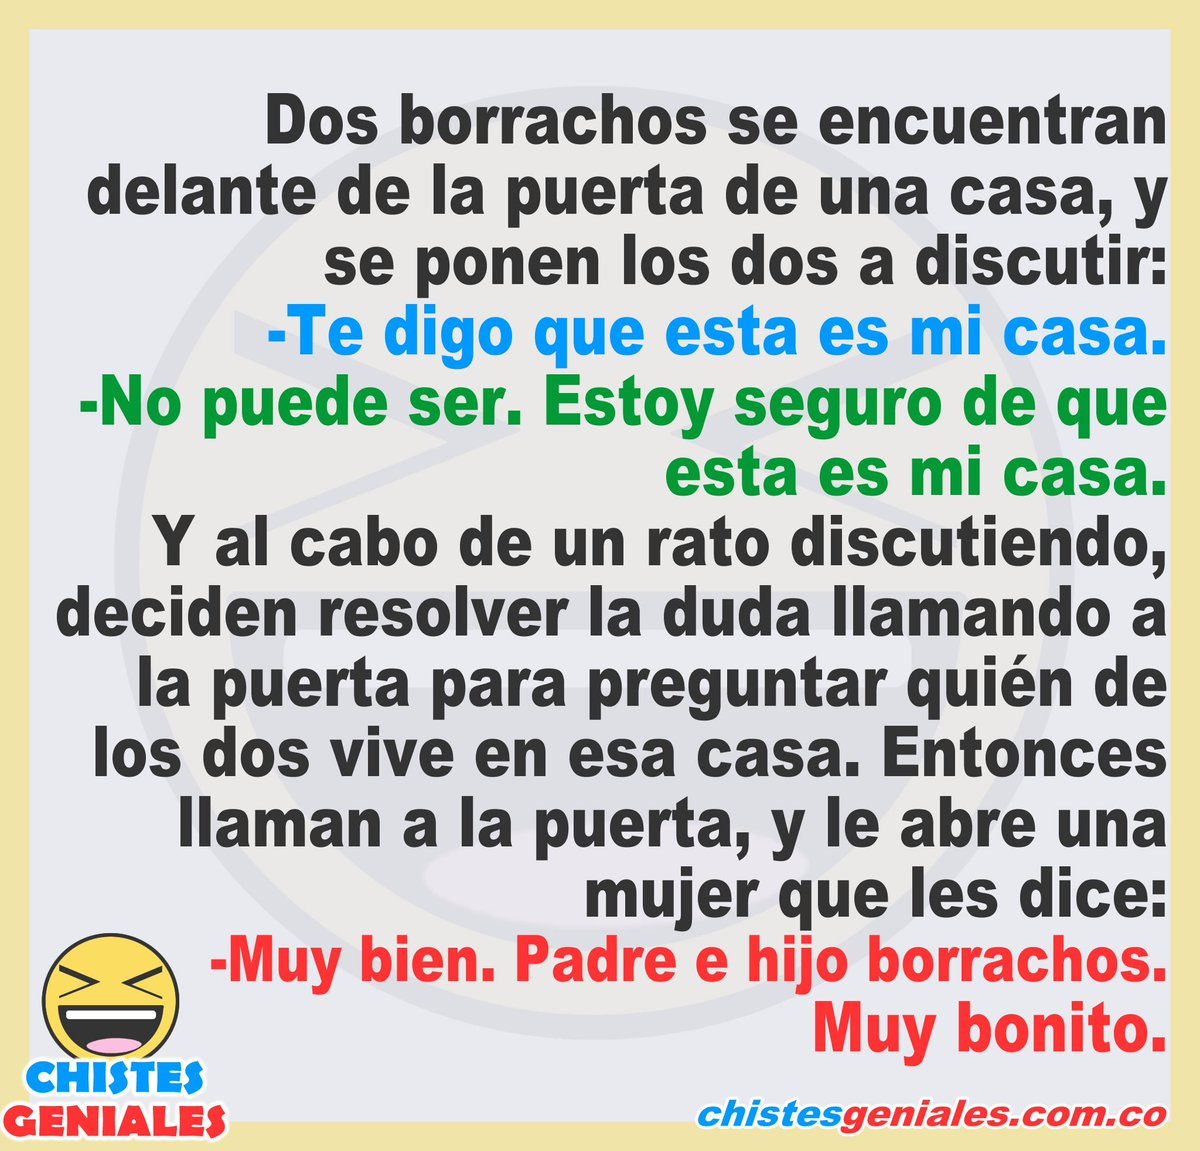 Chistes Geniales On Twitter Chistesgeniales Chistes Humor